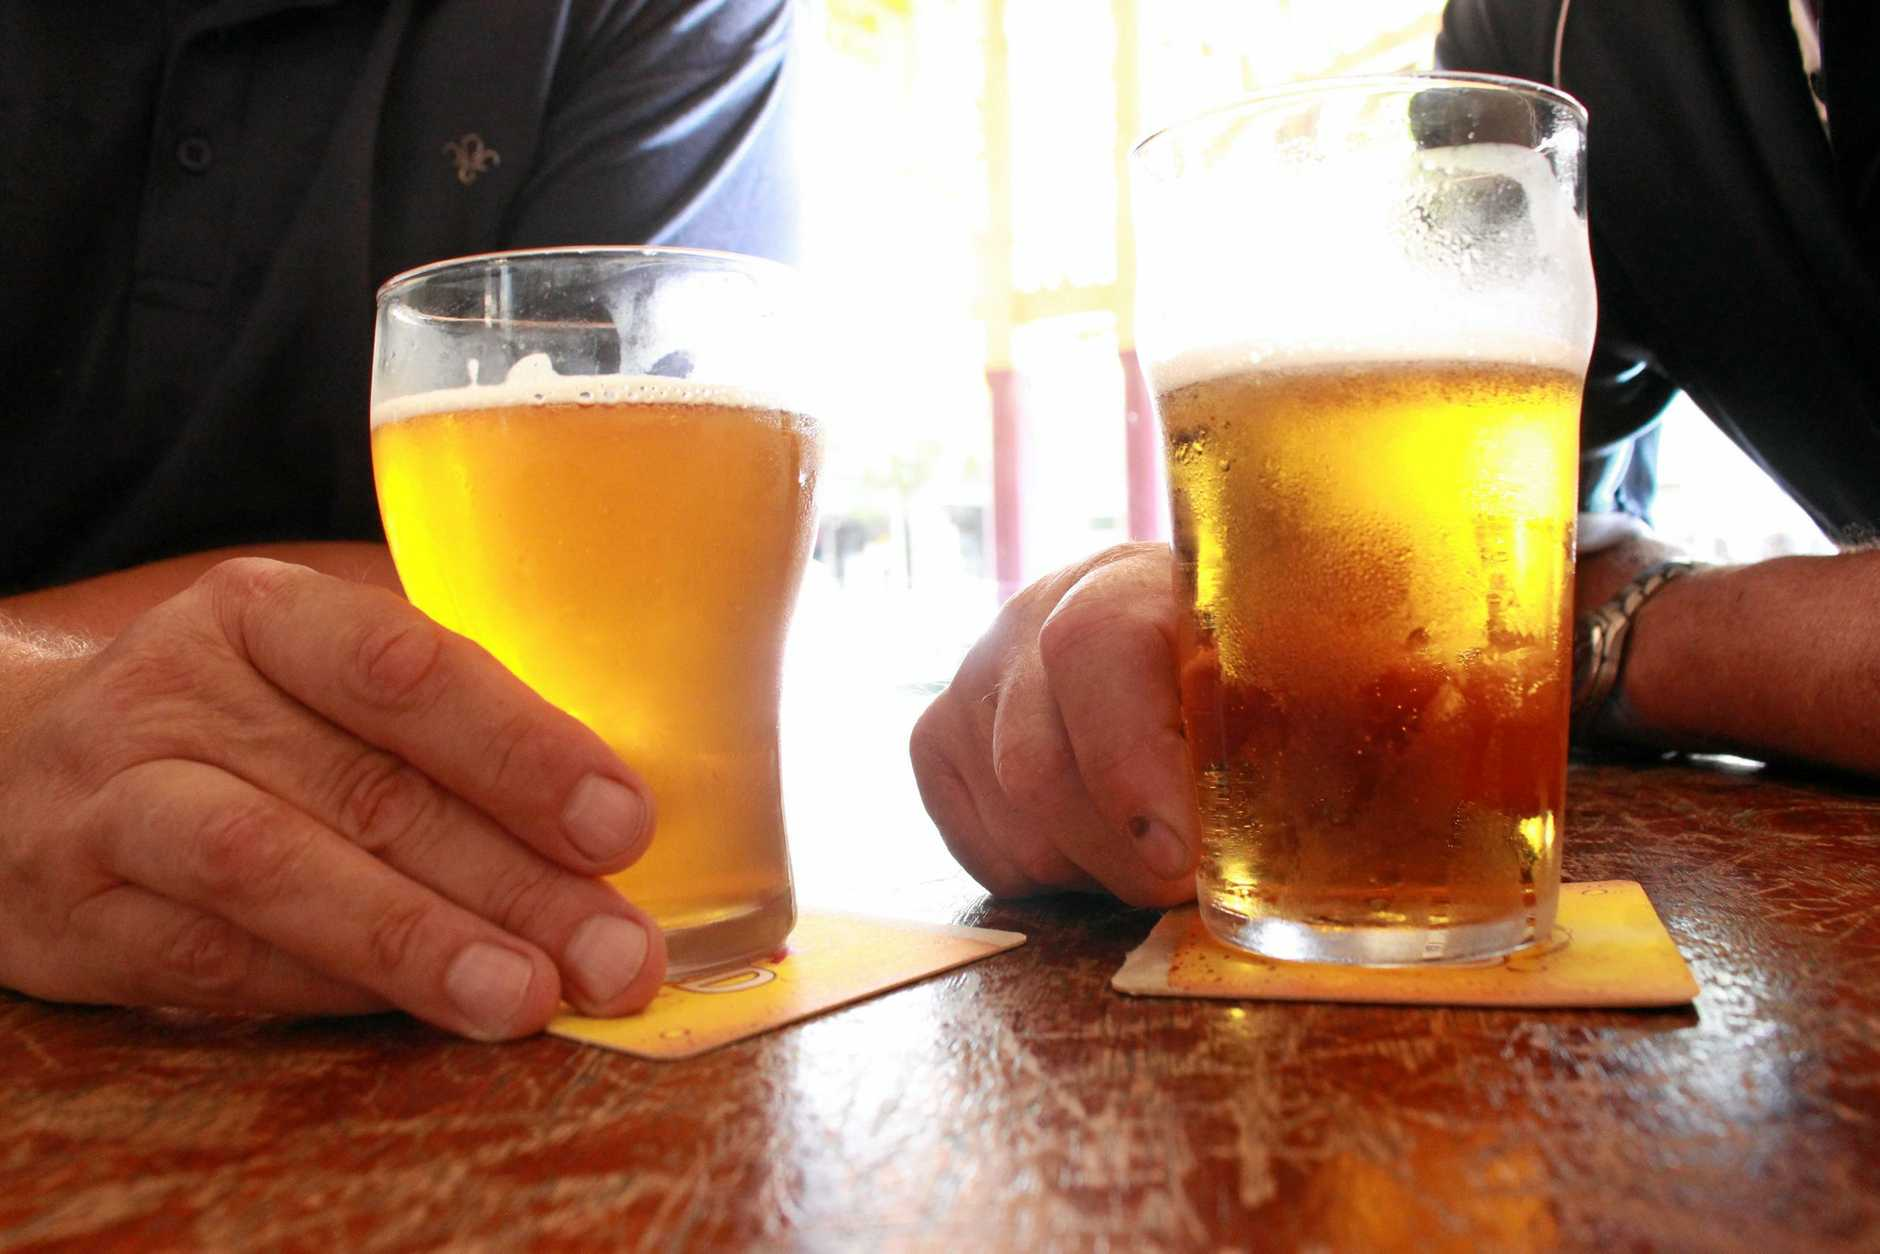 According to a national health organisation report, rural regions have more than double the impact of drug and alcohol compared to those in city areas.